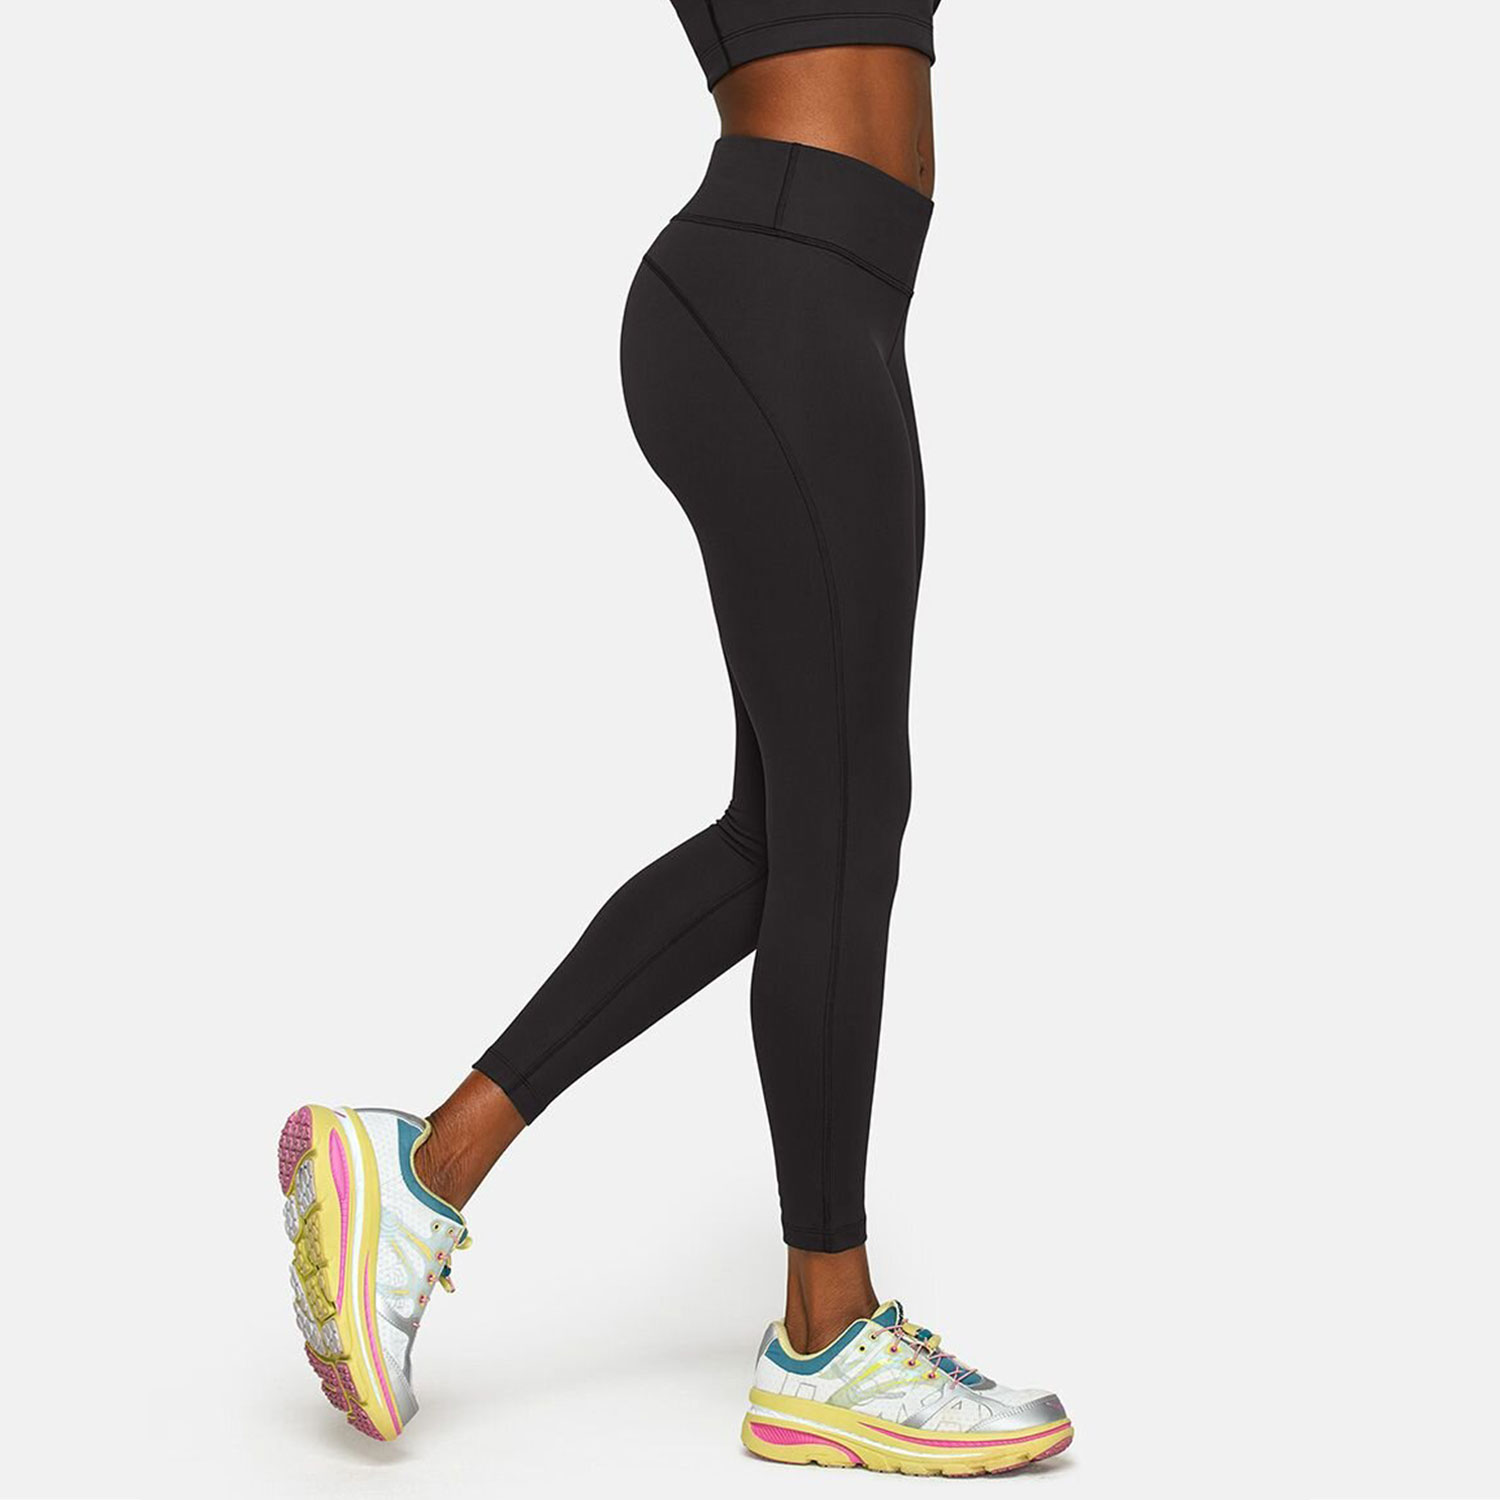 TechSweat 7/8 Flex Leggings